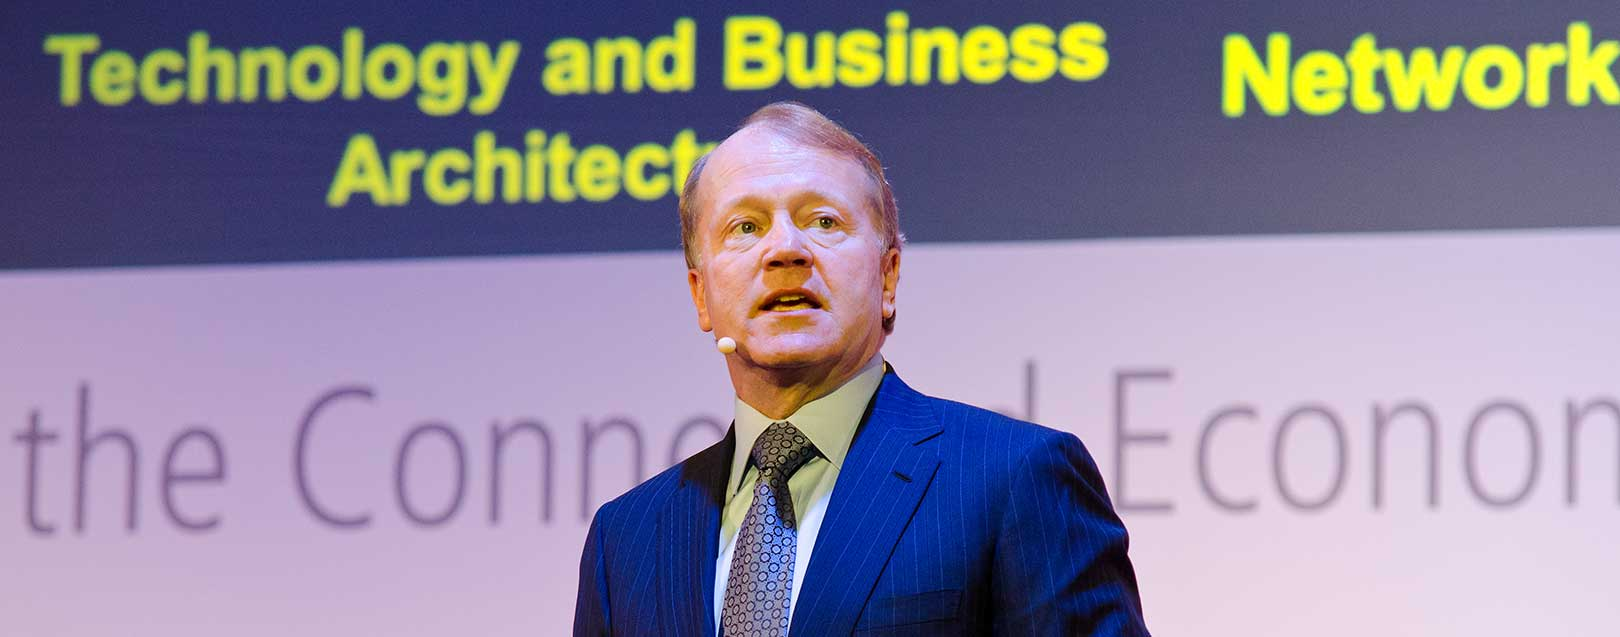 India will turn out to be a role model for the world economies, Cisco Chairman